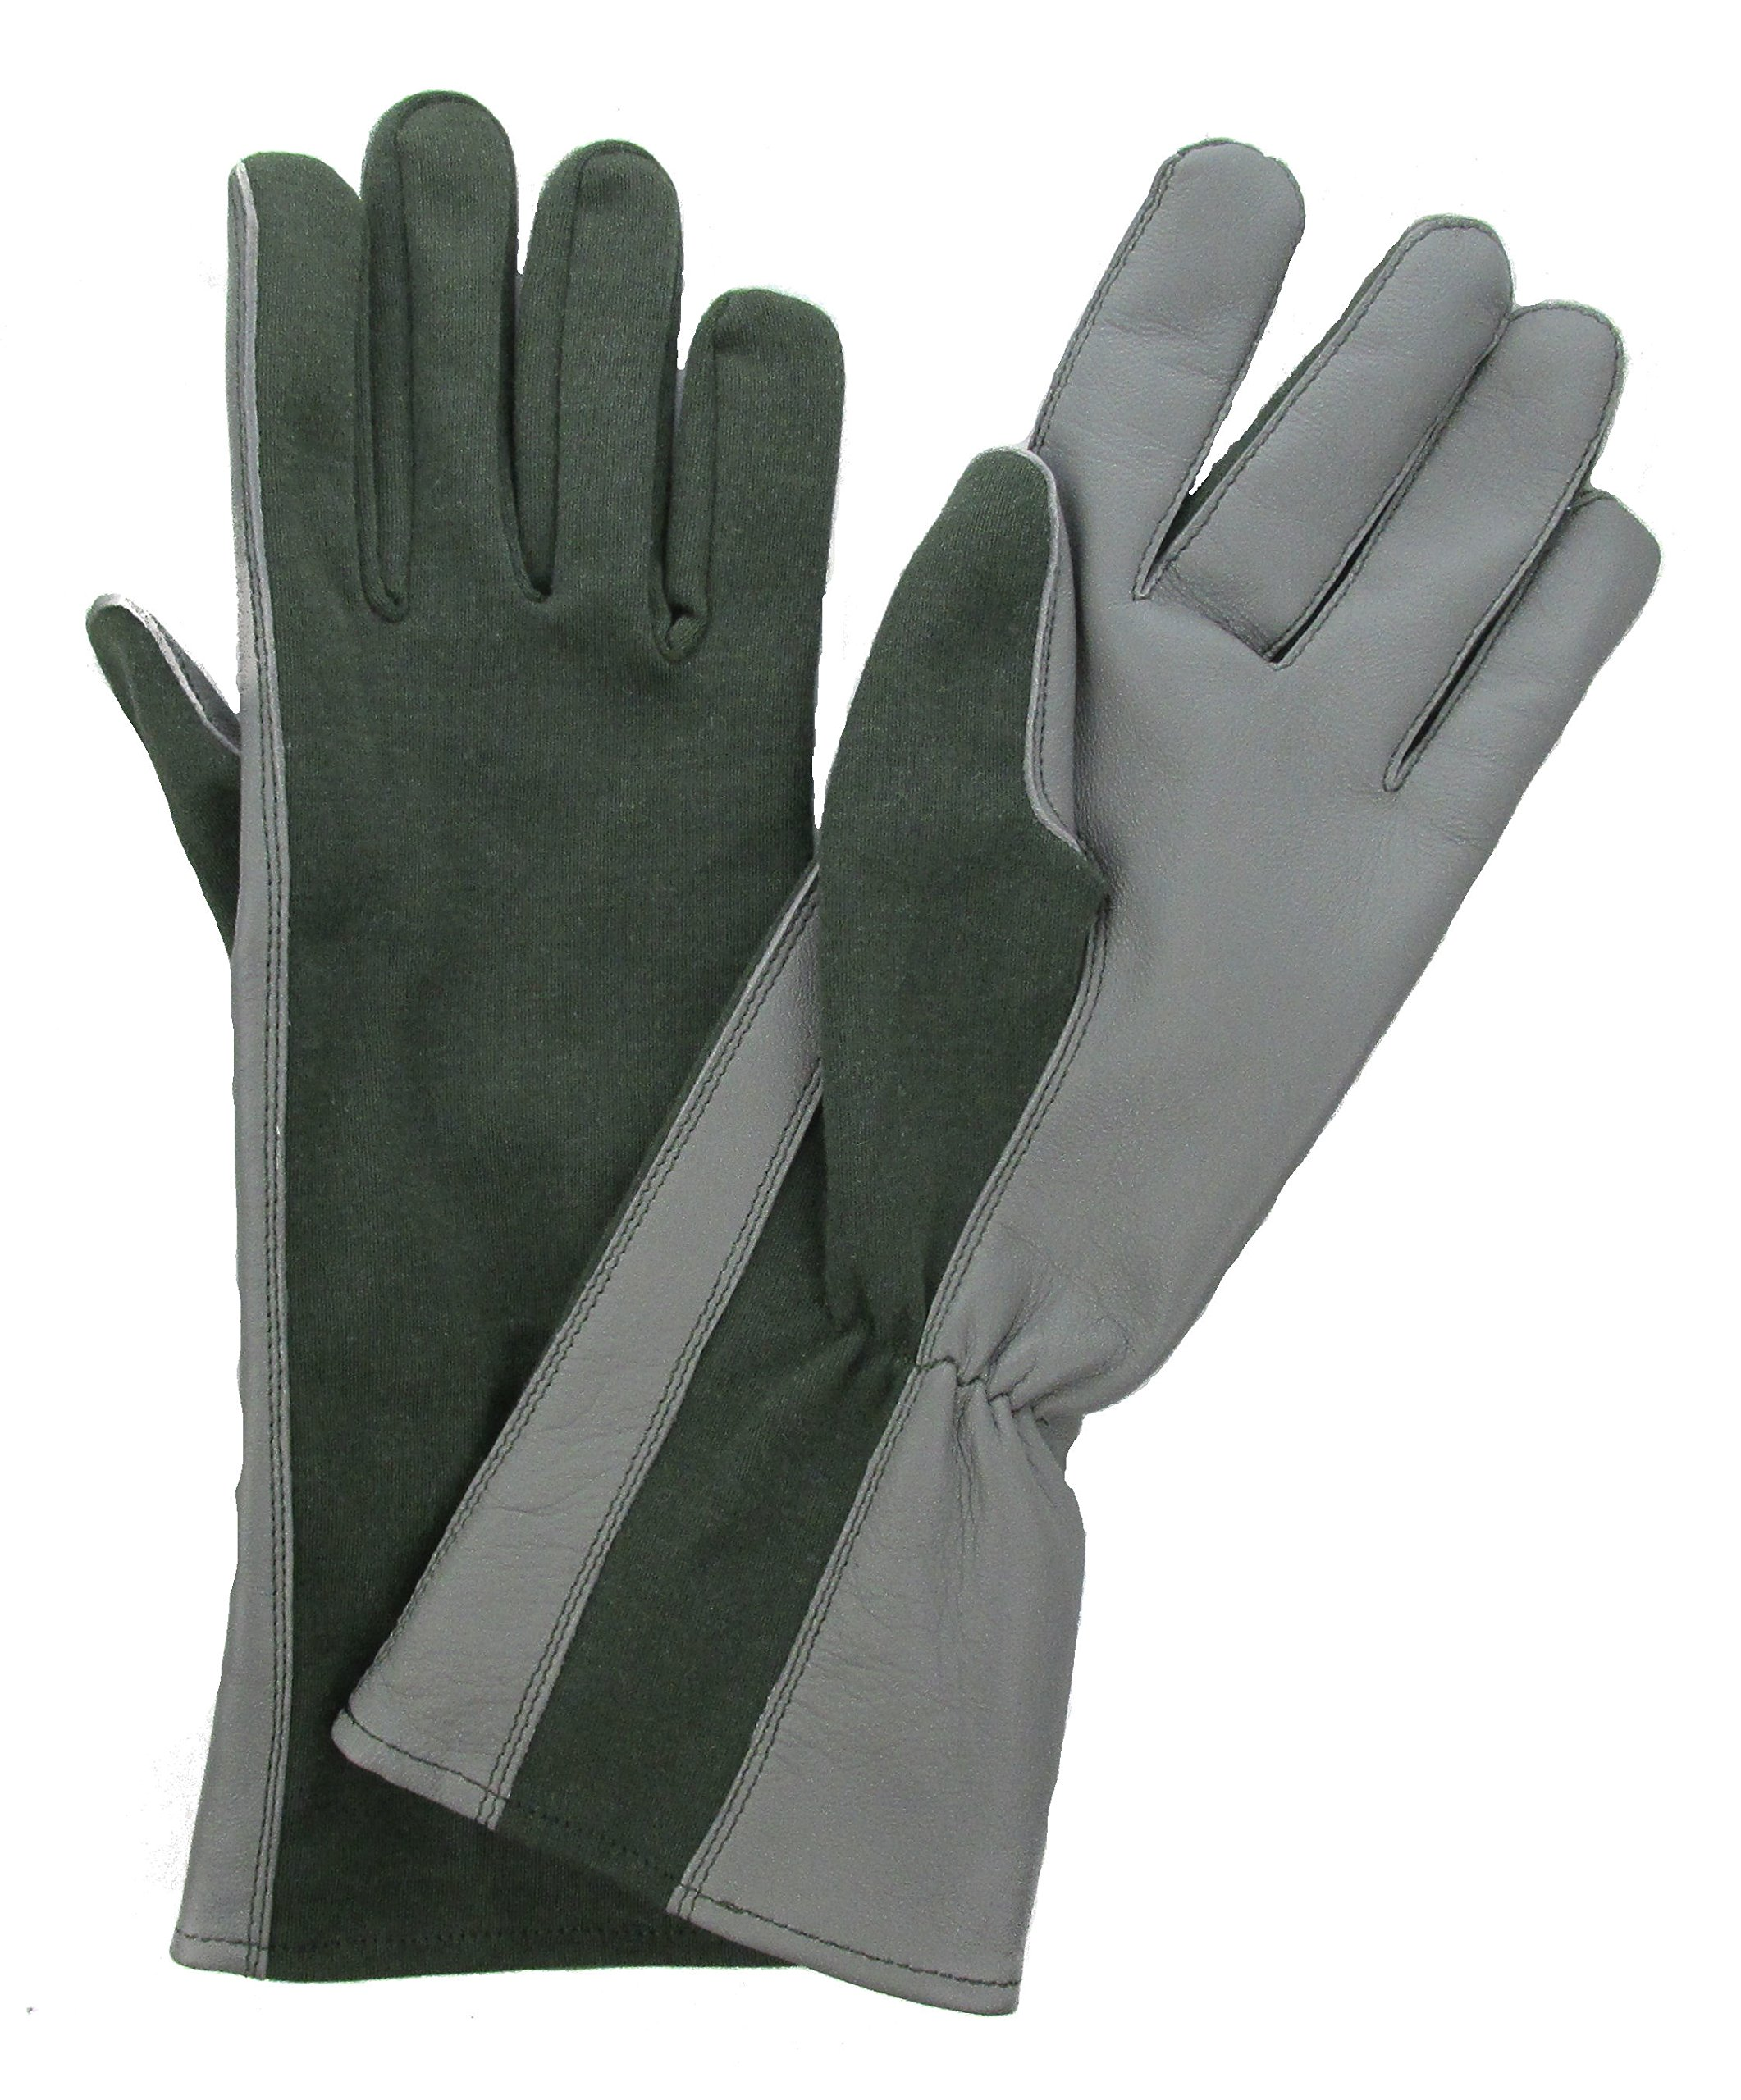 Military Uniform Supply Nomex Flight Gloves - Size Large (10) SAGE GREEN